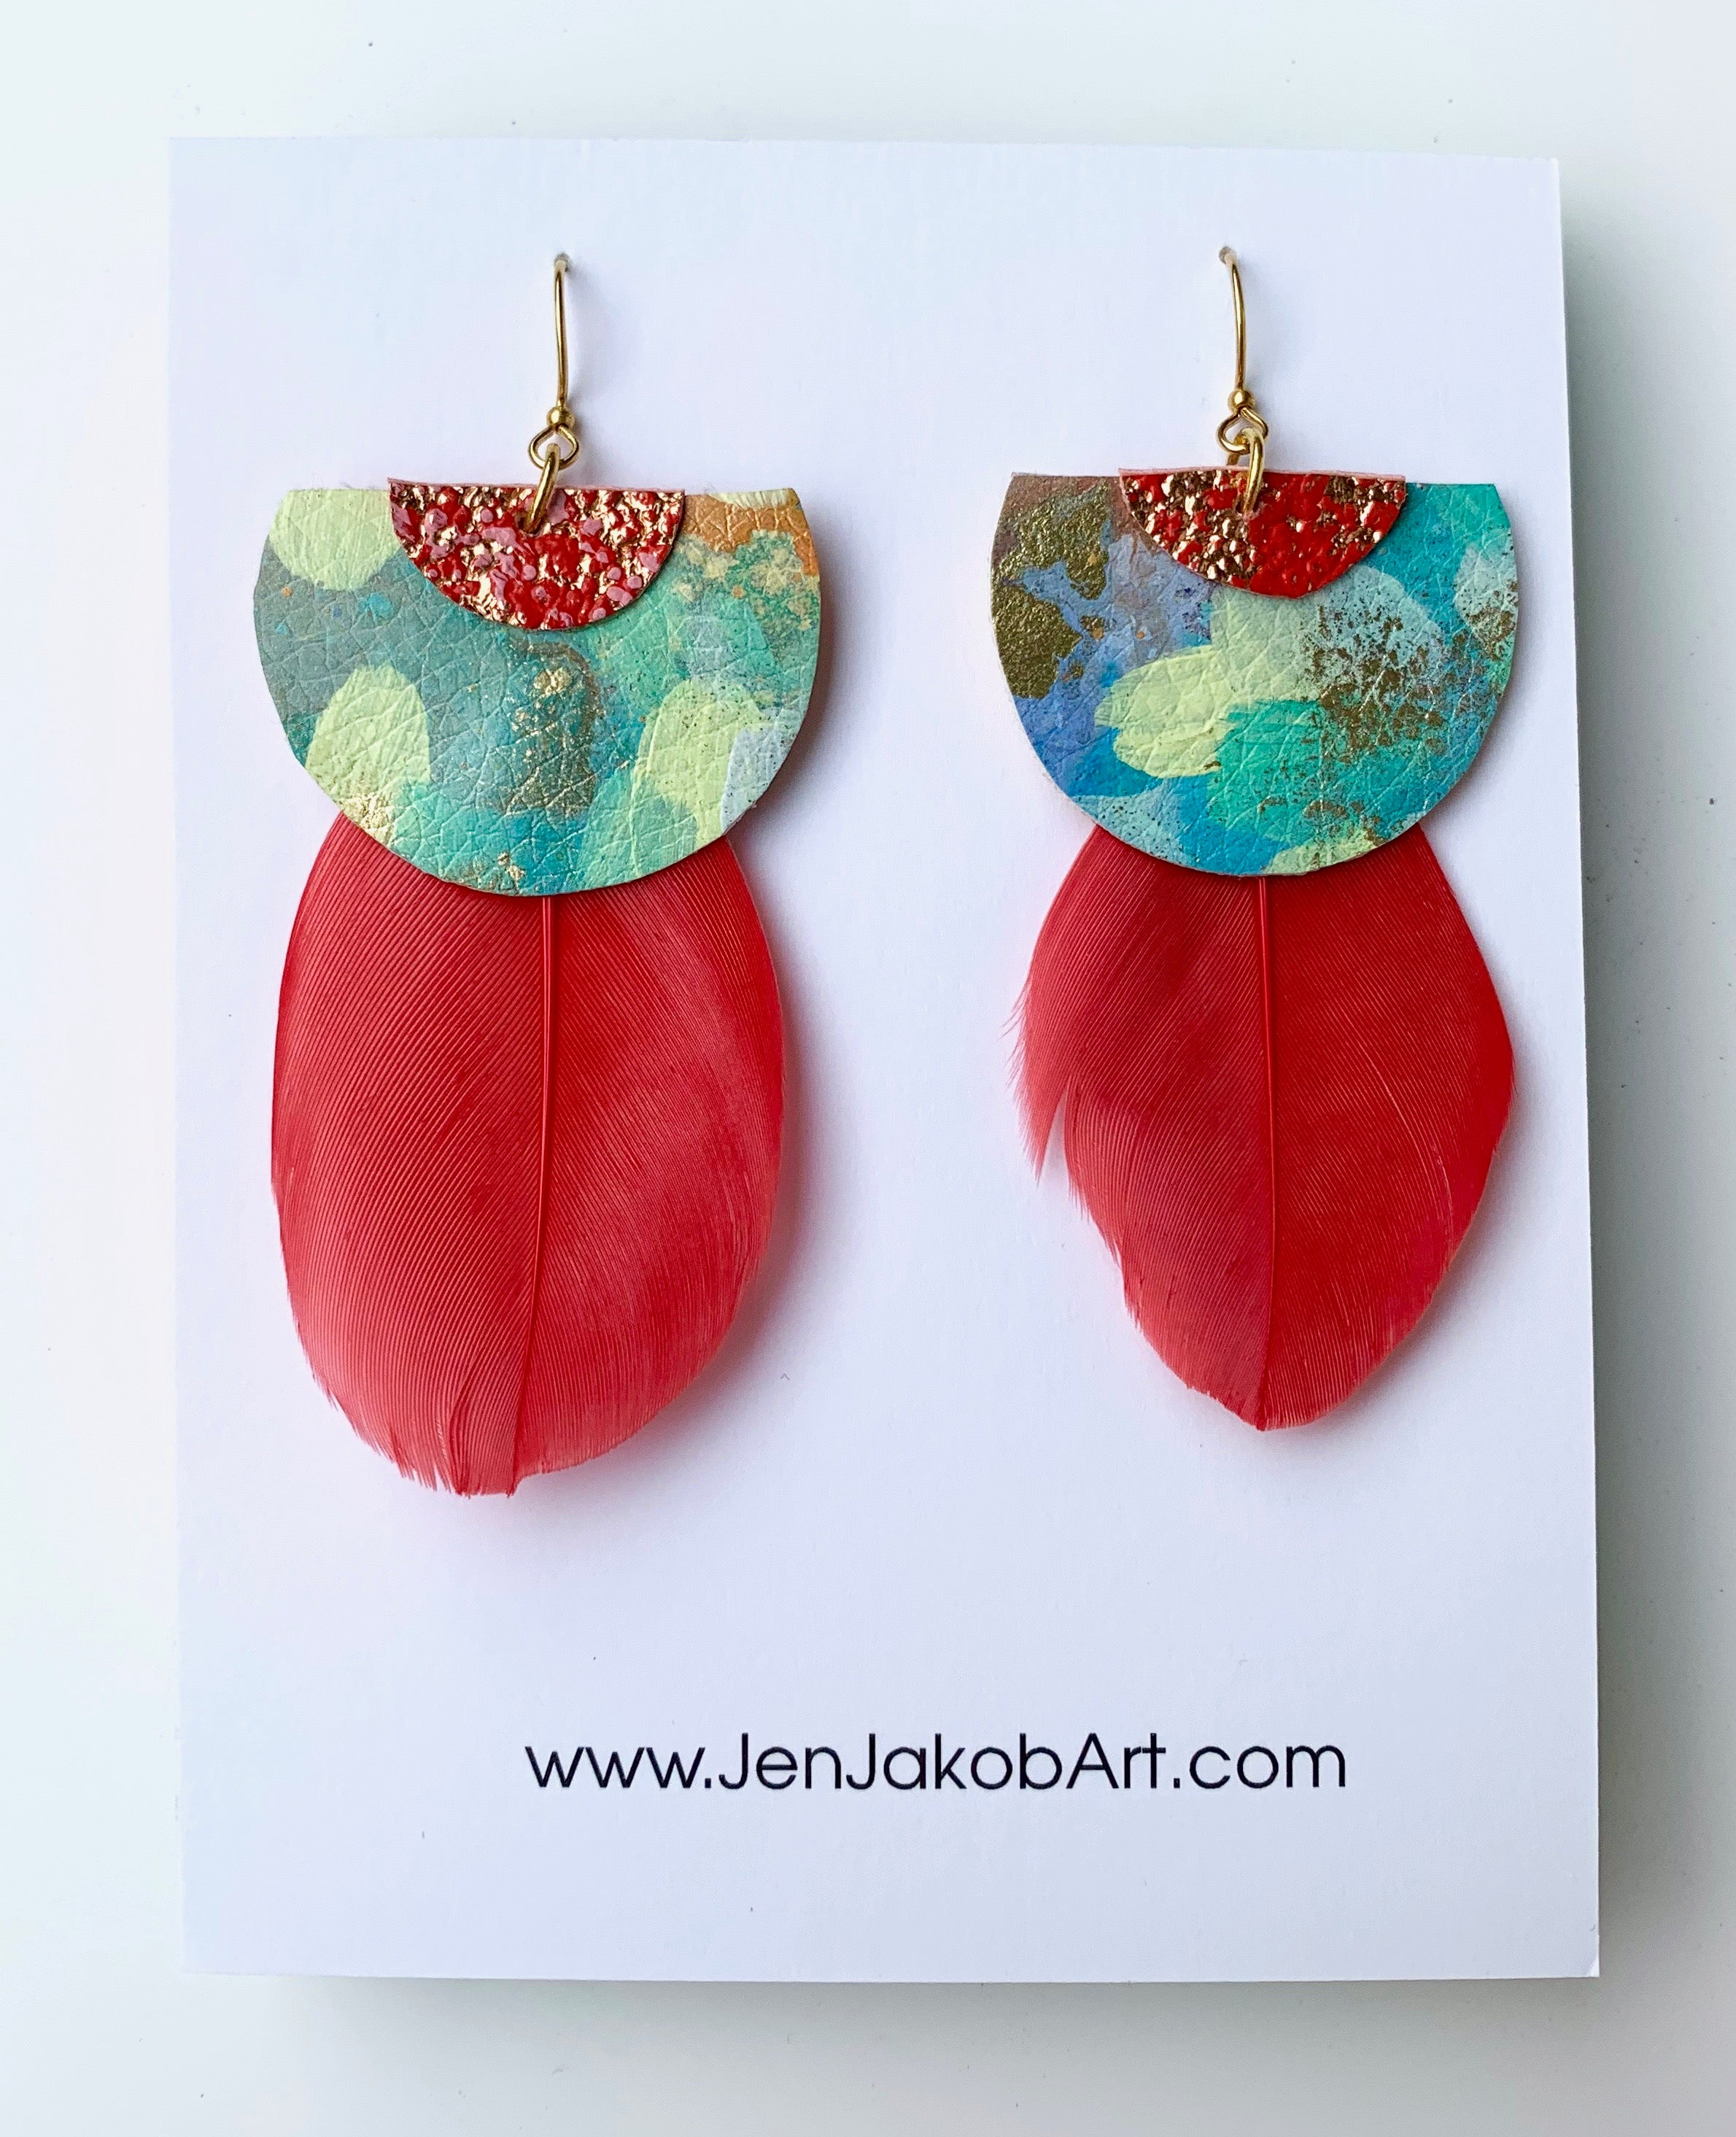 Earrings with Feathers in red, green, yellow, and copper